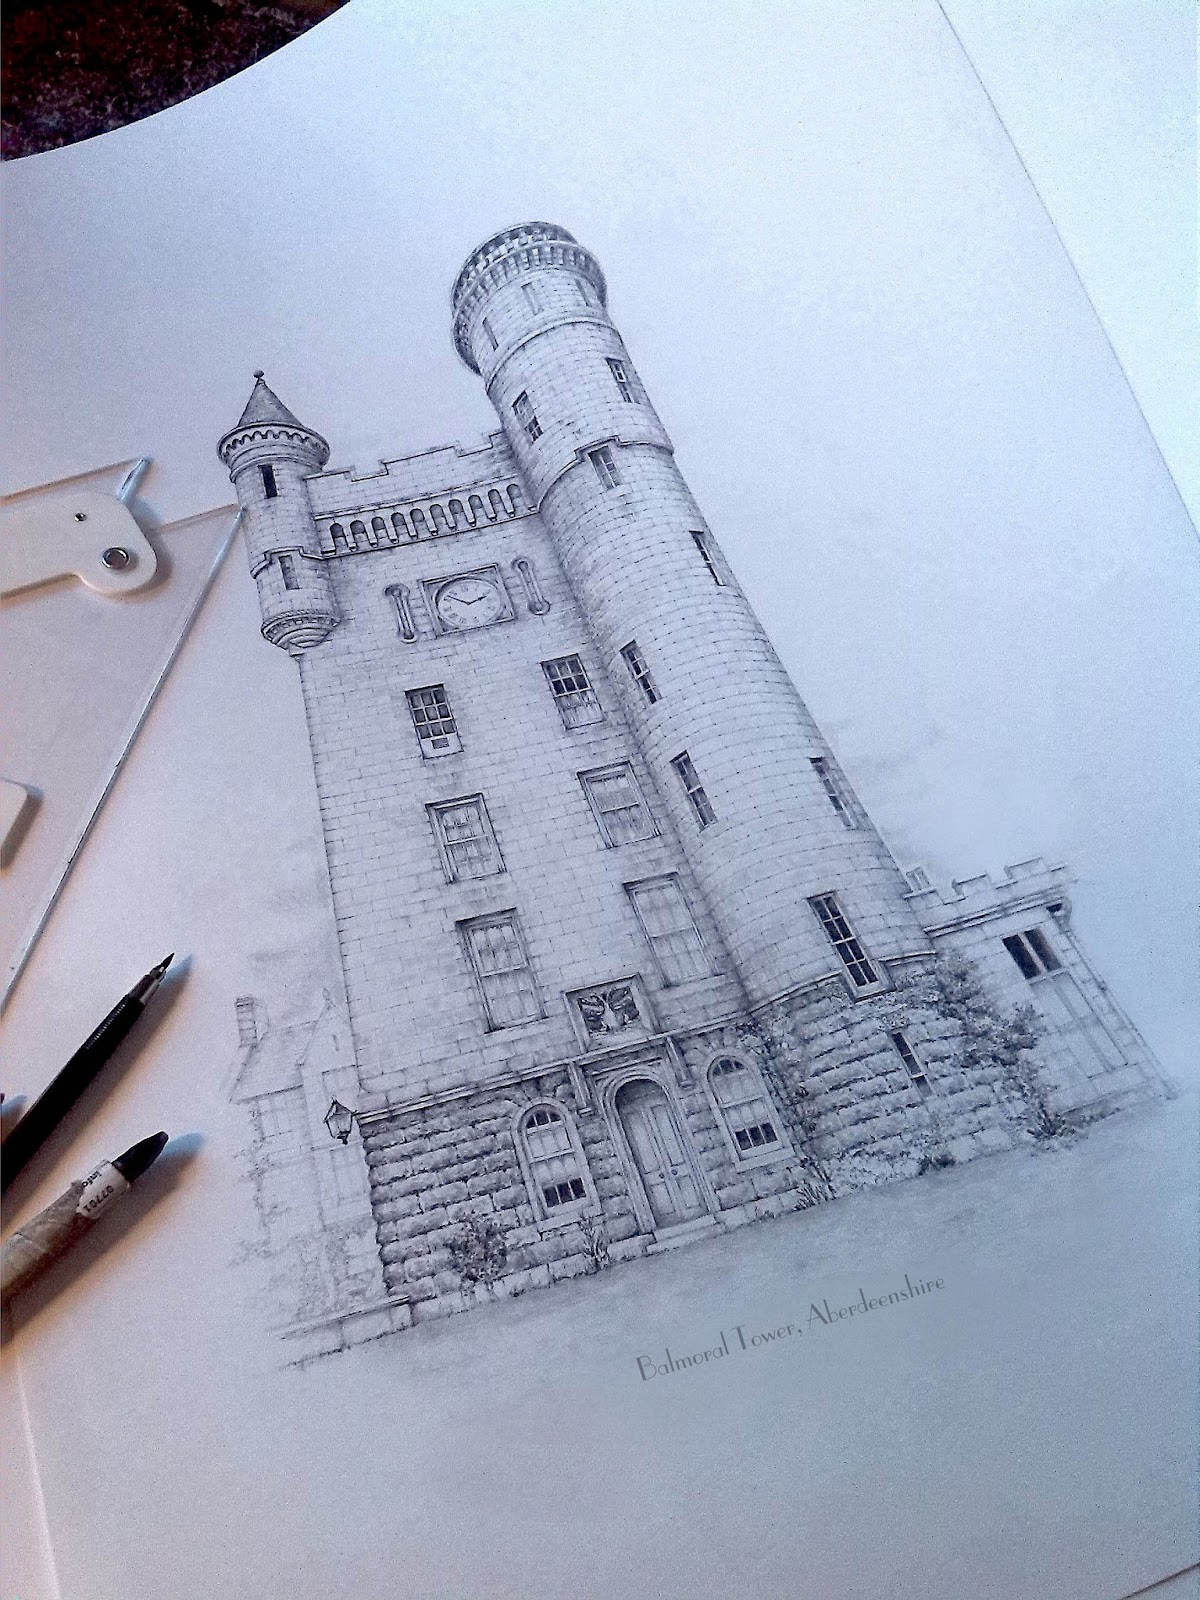 04-Balmoral-Tower-Aberdeenshire-Jamie-Cameron-Intricate-Architectural-Drawings-and-Illustrations-www-designstack-co